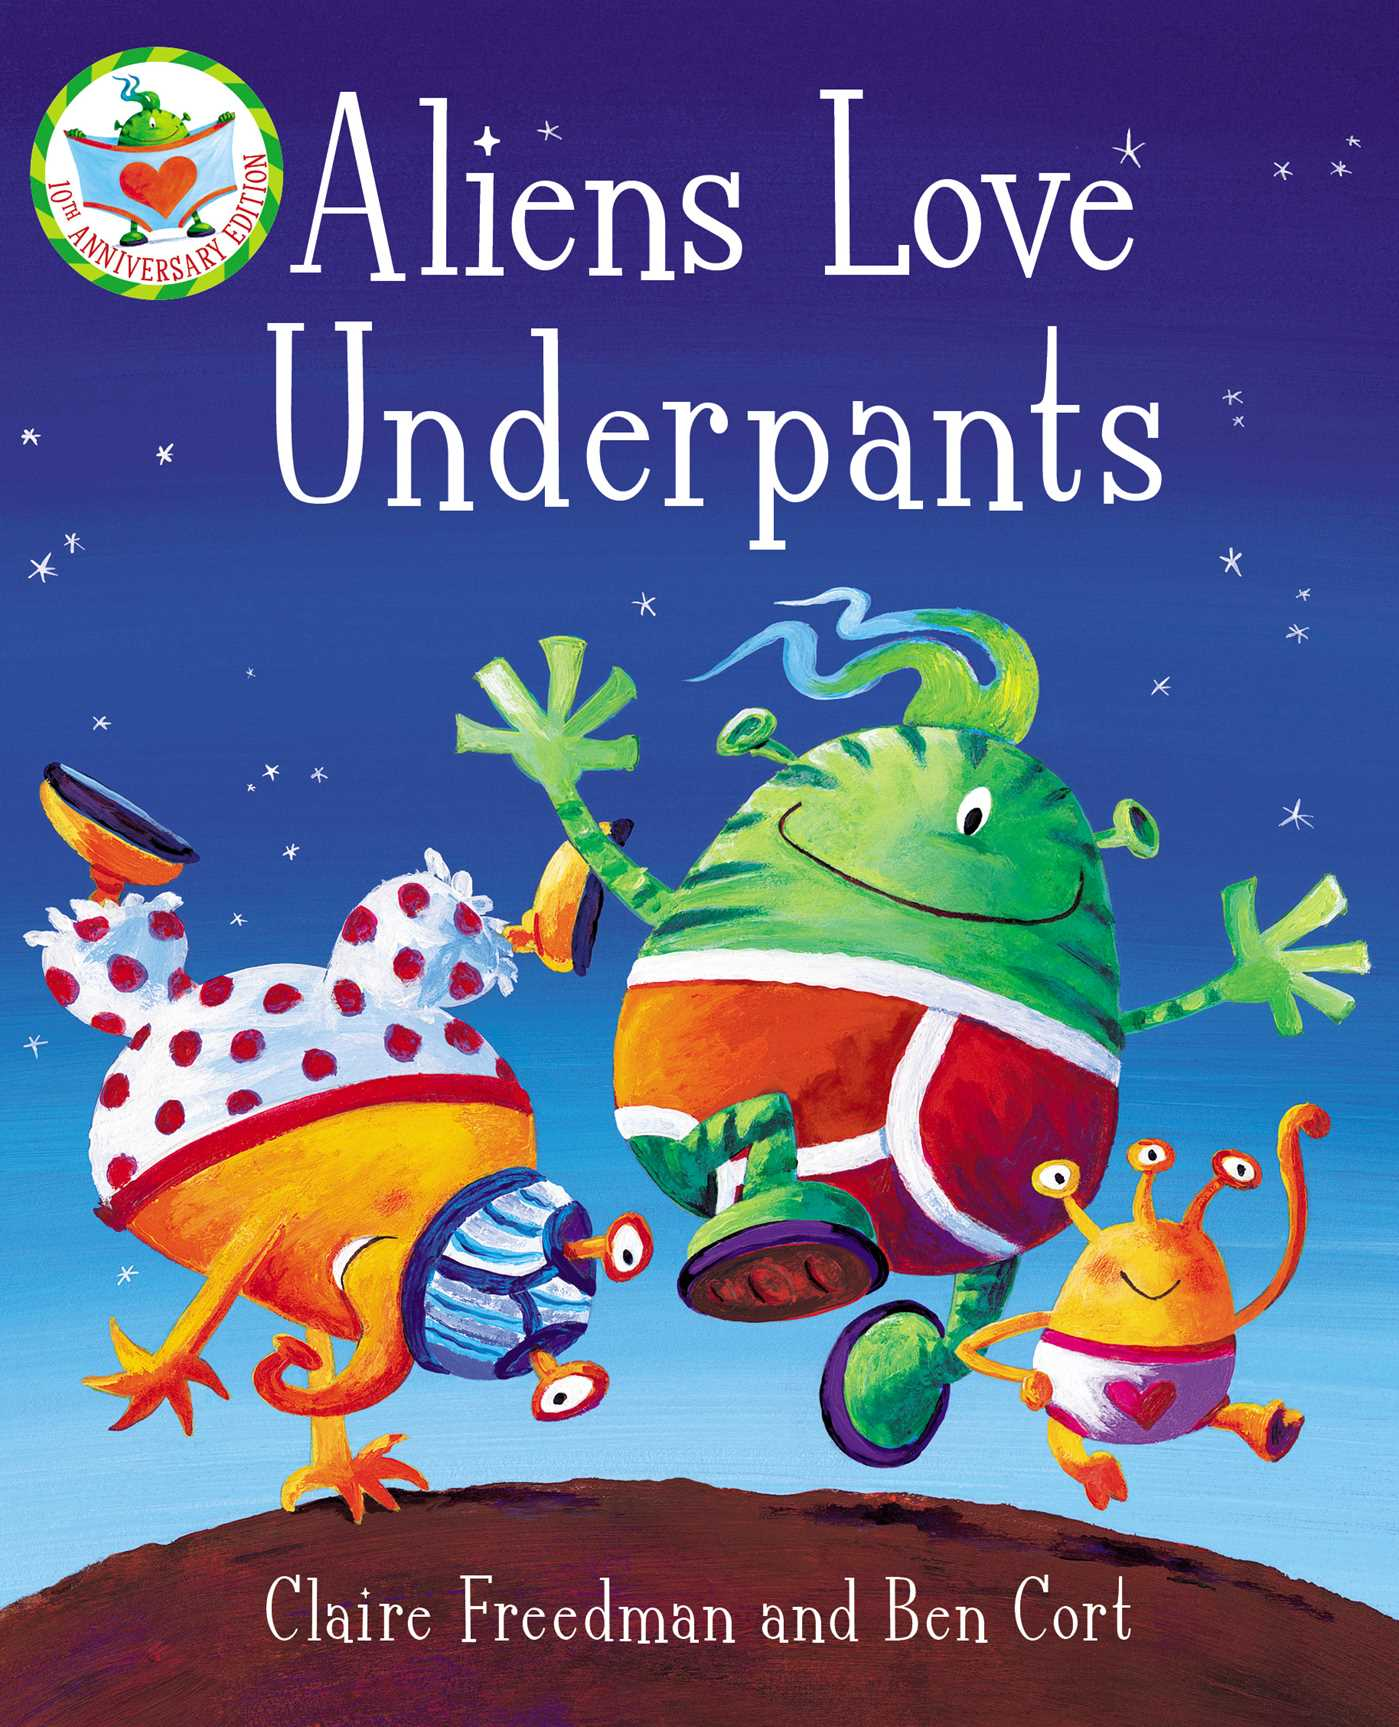 Image of the front cover of Aliens Love Underpants